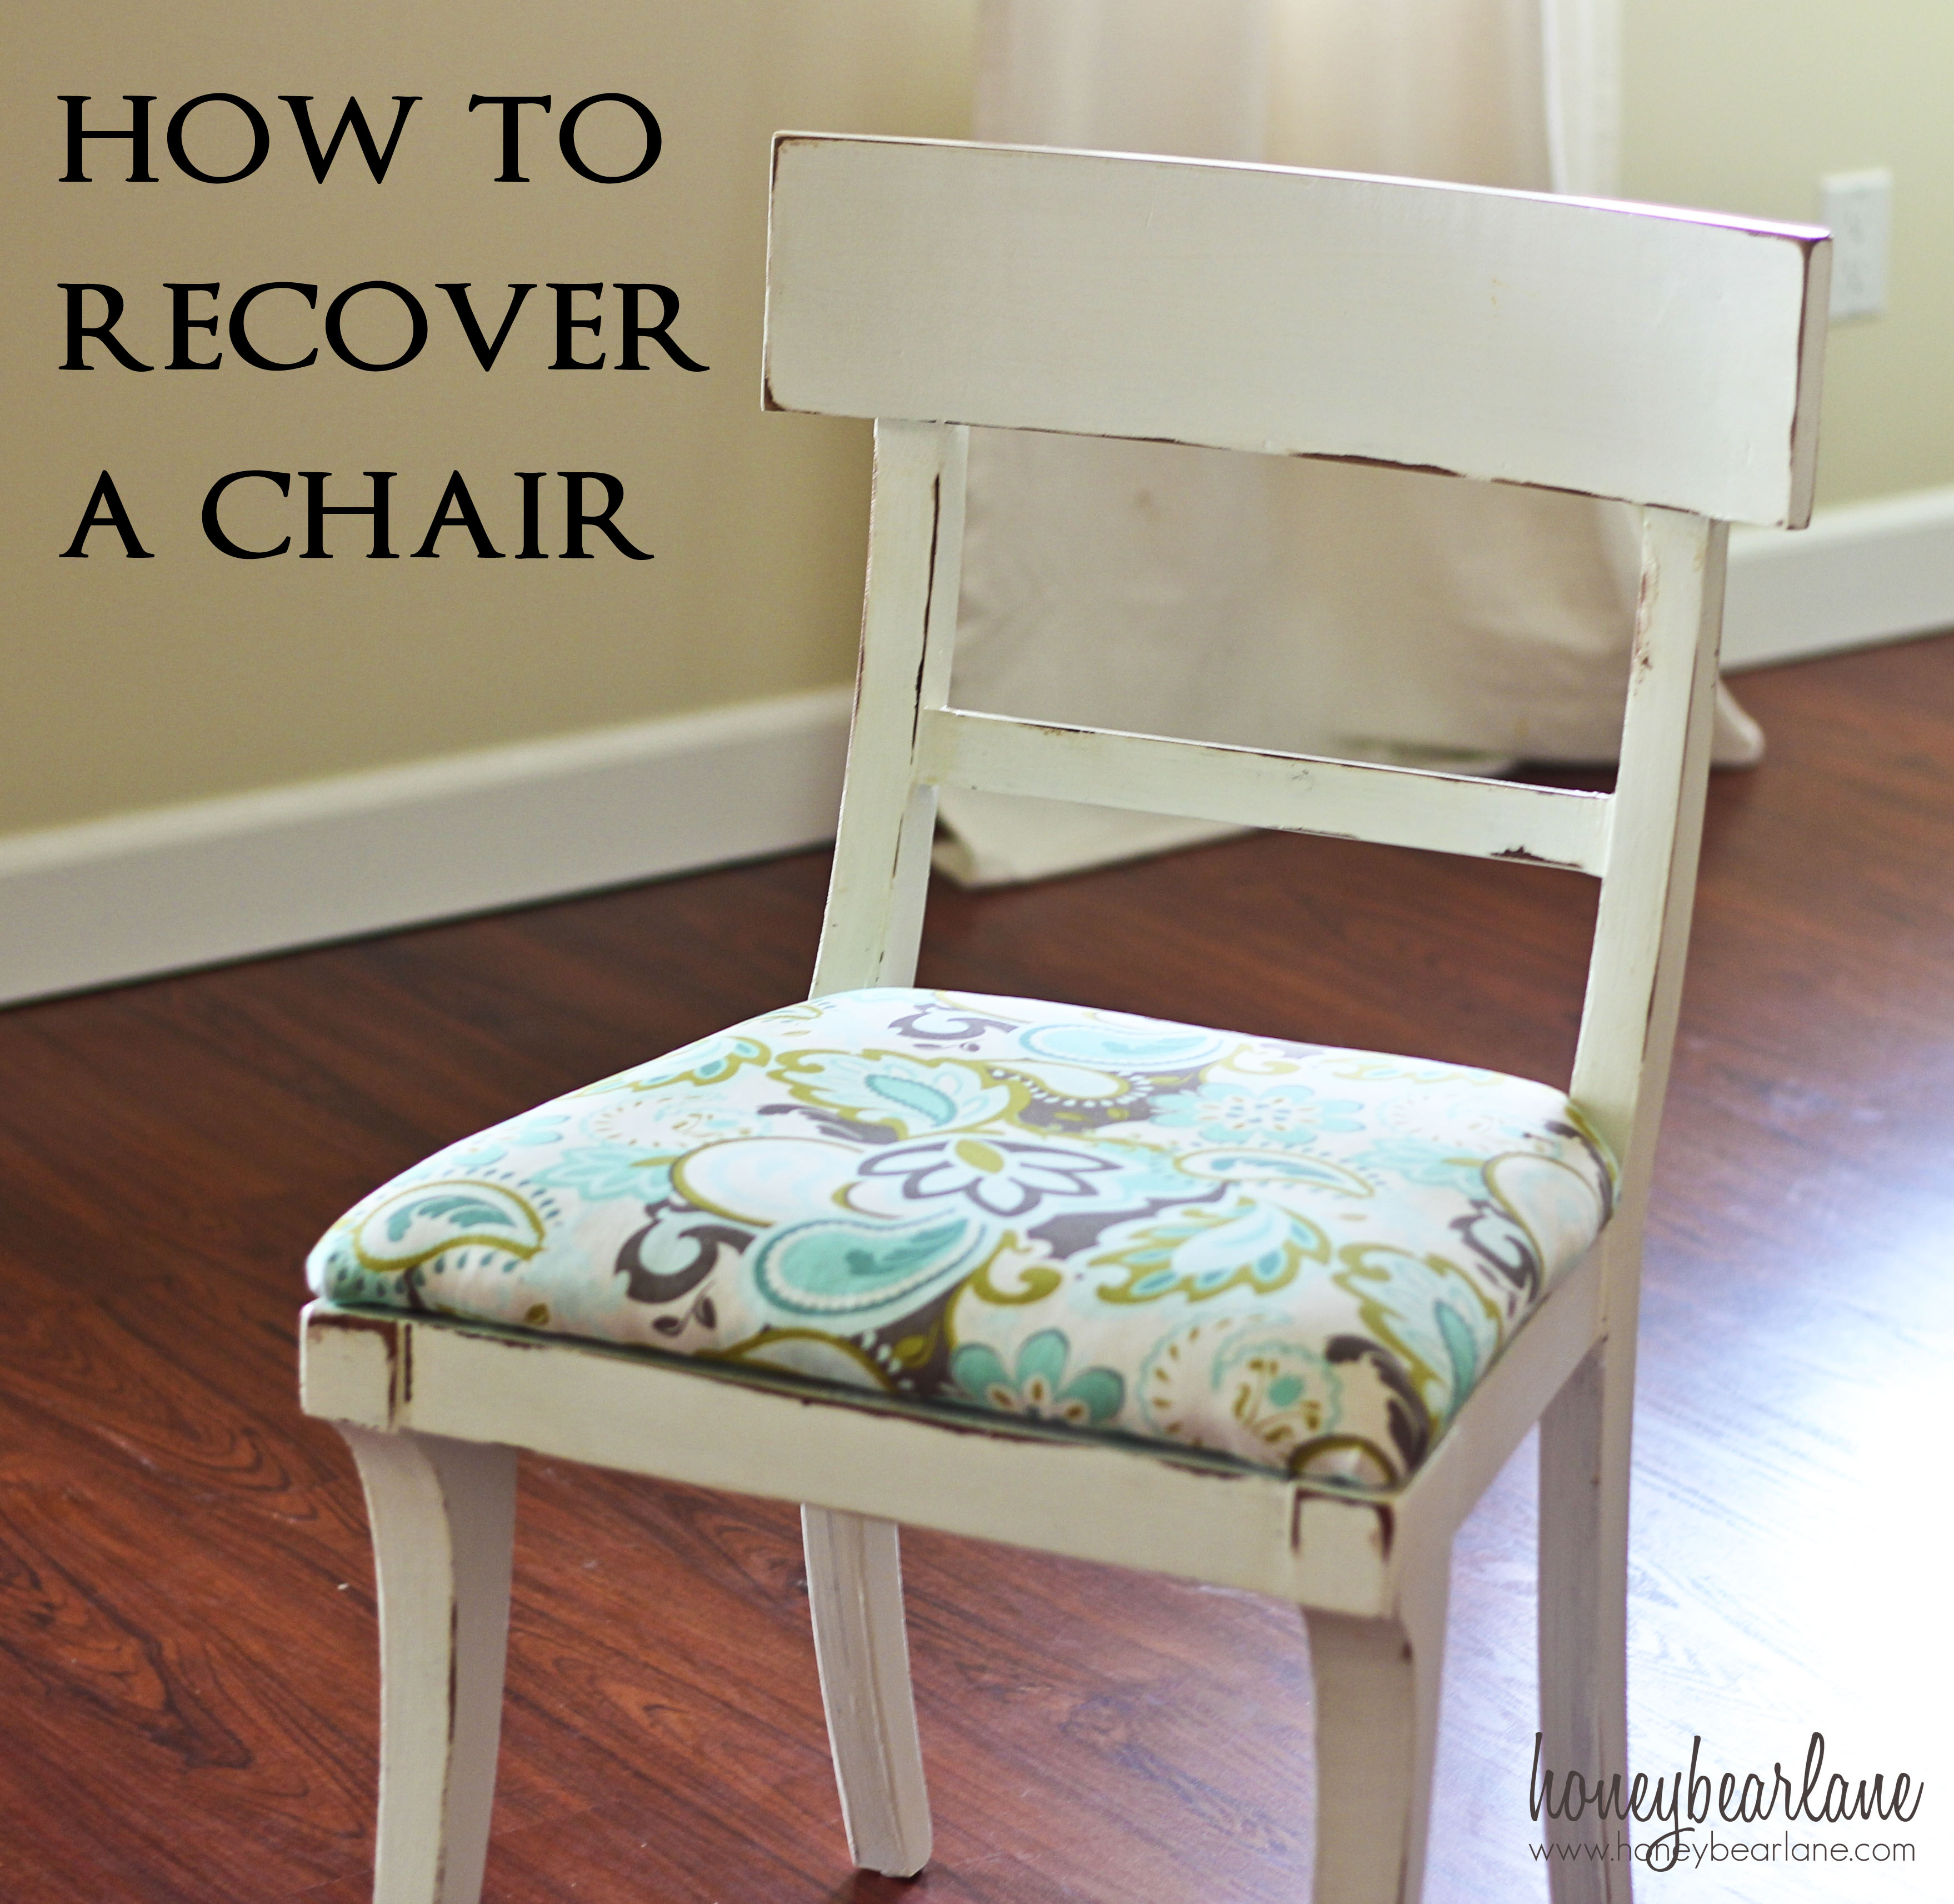 Recover chairs diy crafts - How to recover dining room chairs ...